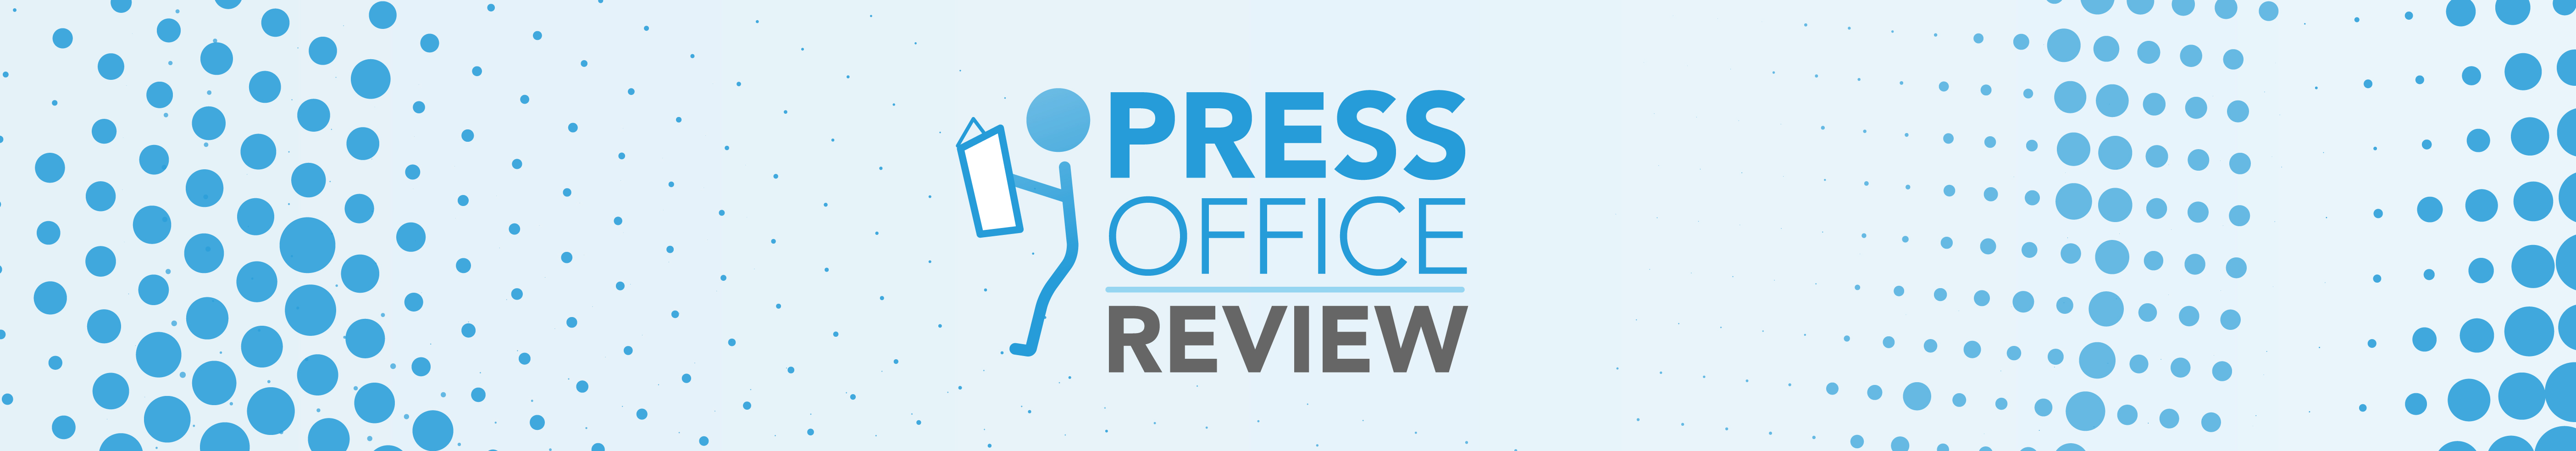 PQE Group Press Office - Press review